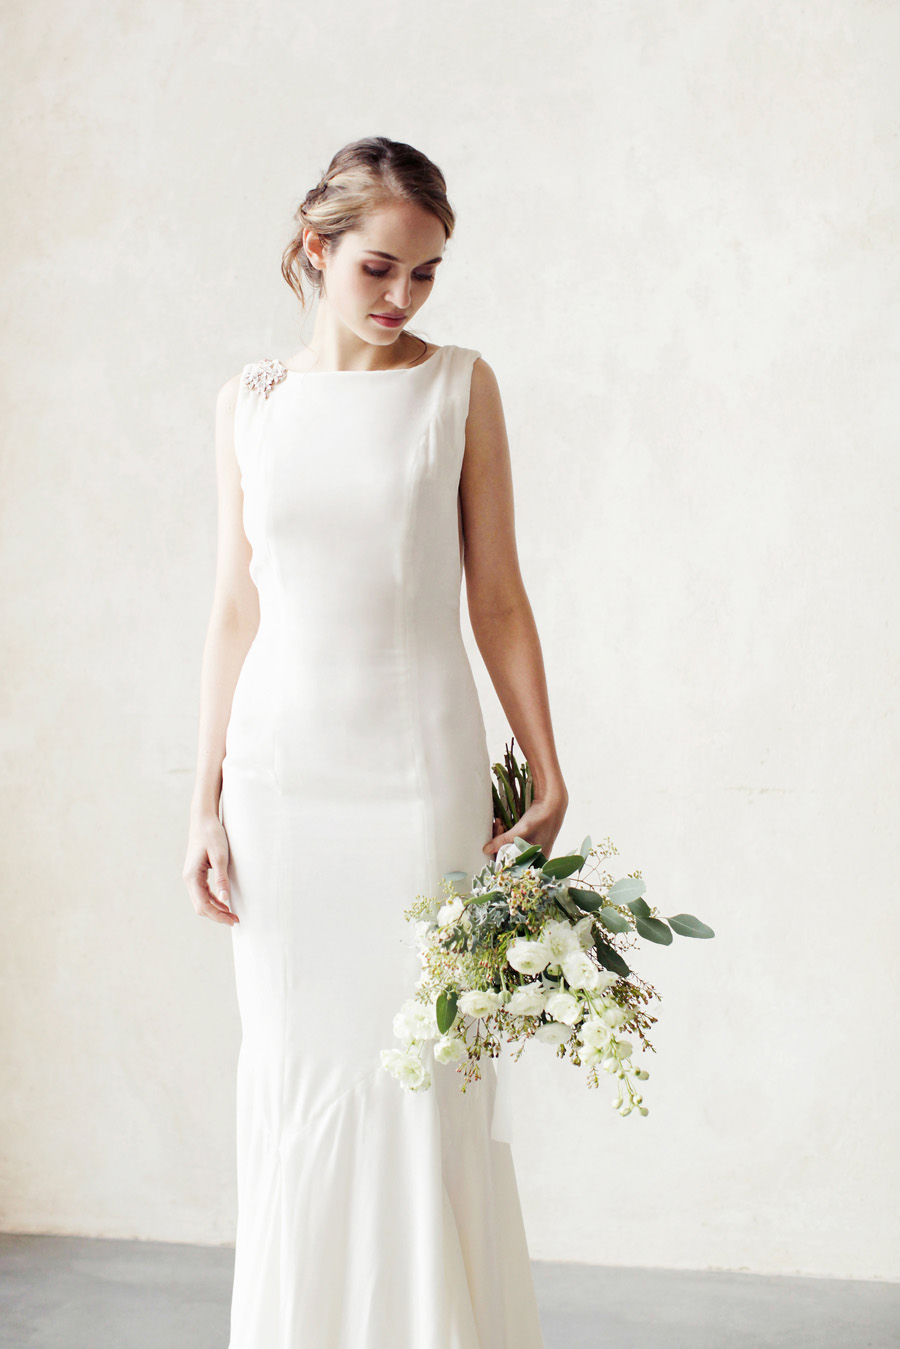 unique and elegant wedding dress ideas with Ailsa Munro, image by Rachel Rose Photography (26)